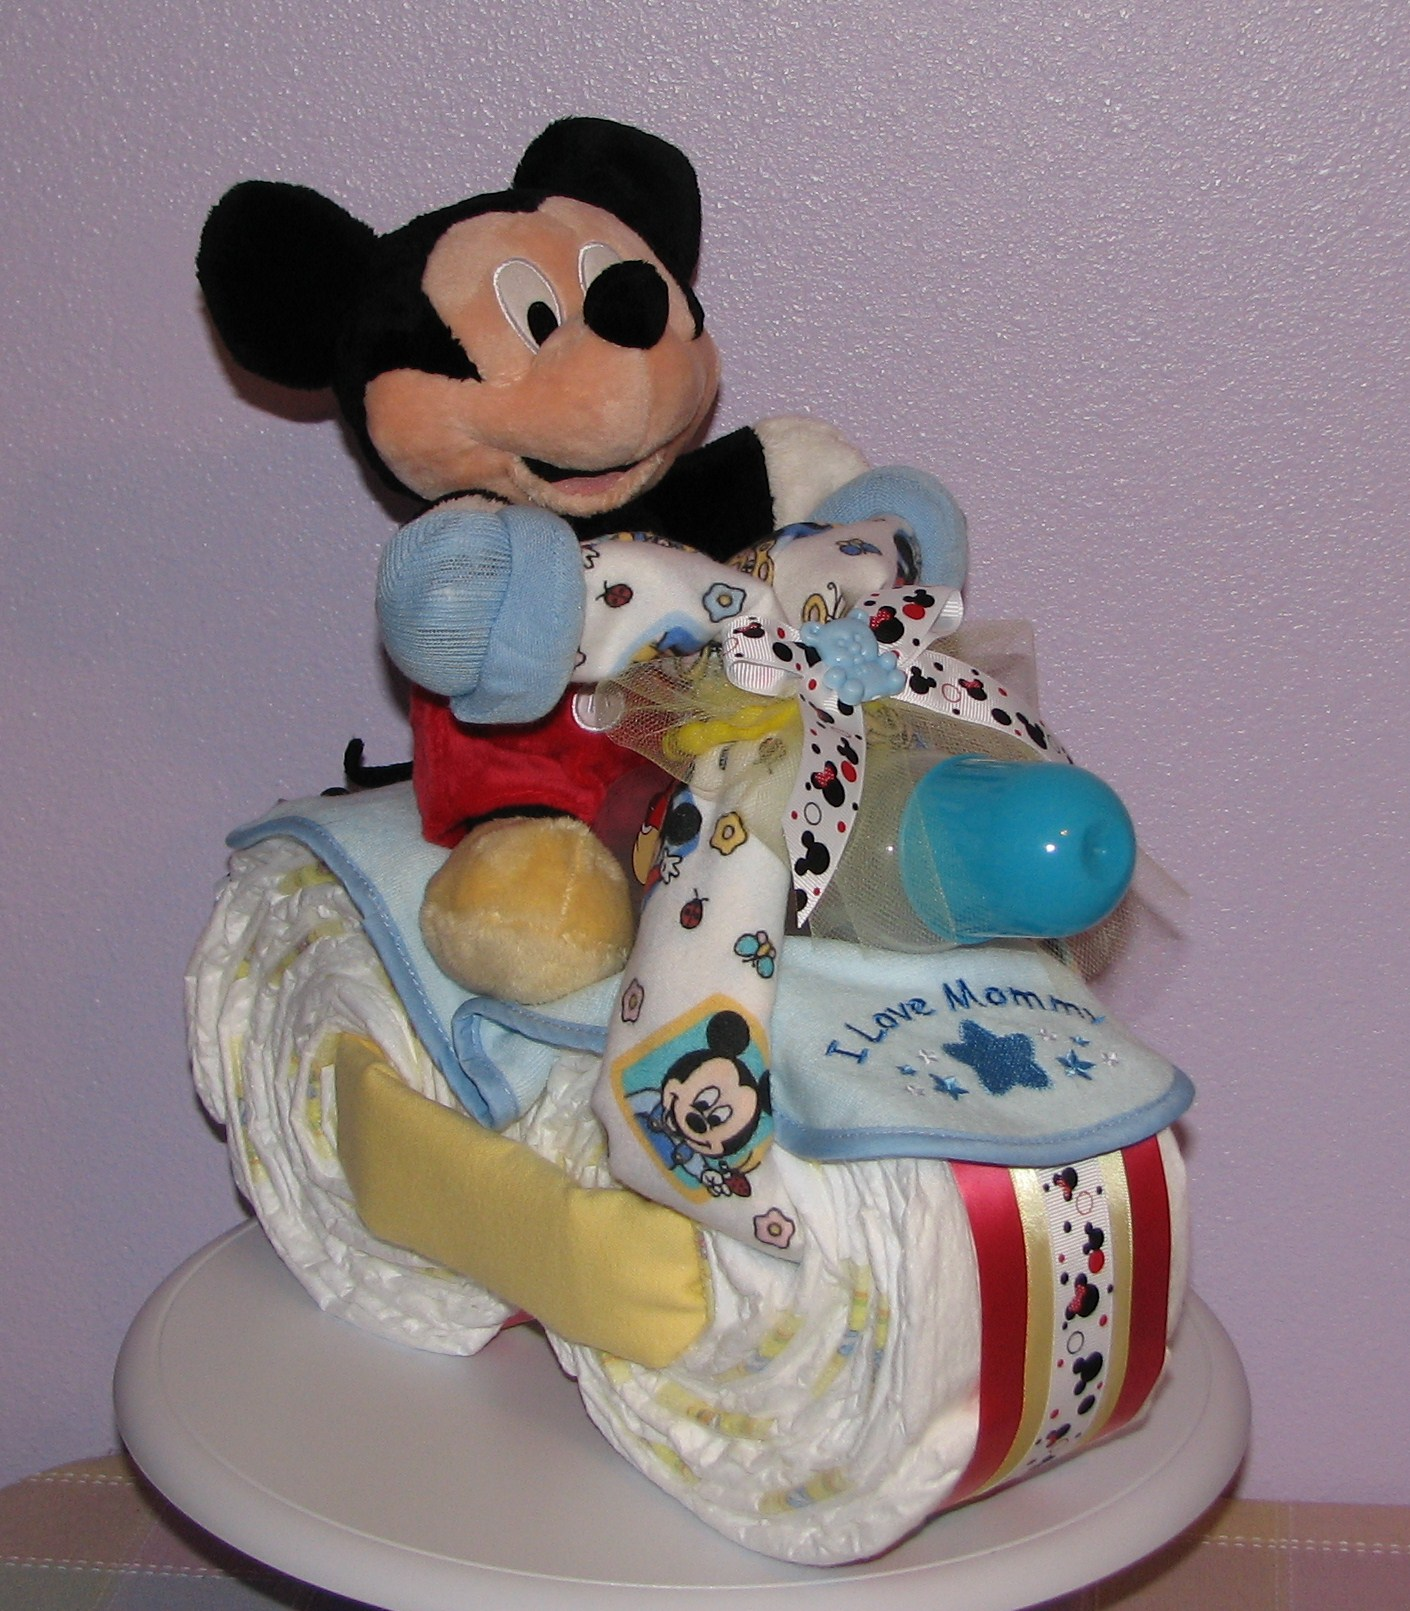 Mickey-Mouse-Diaper-Motorcycle.JPG - Mickey Mouse Diaper Motorcycle